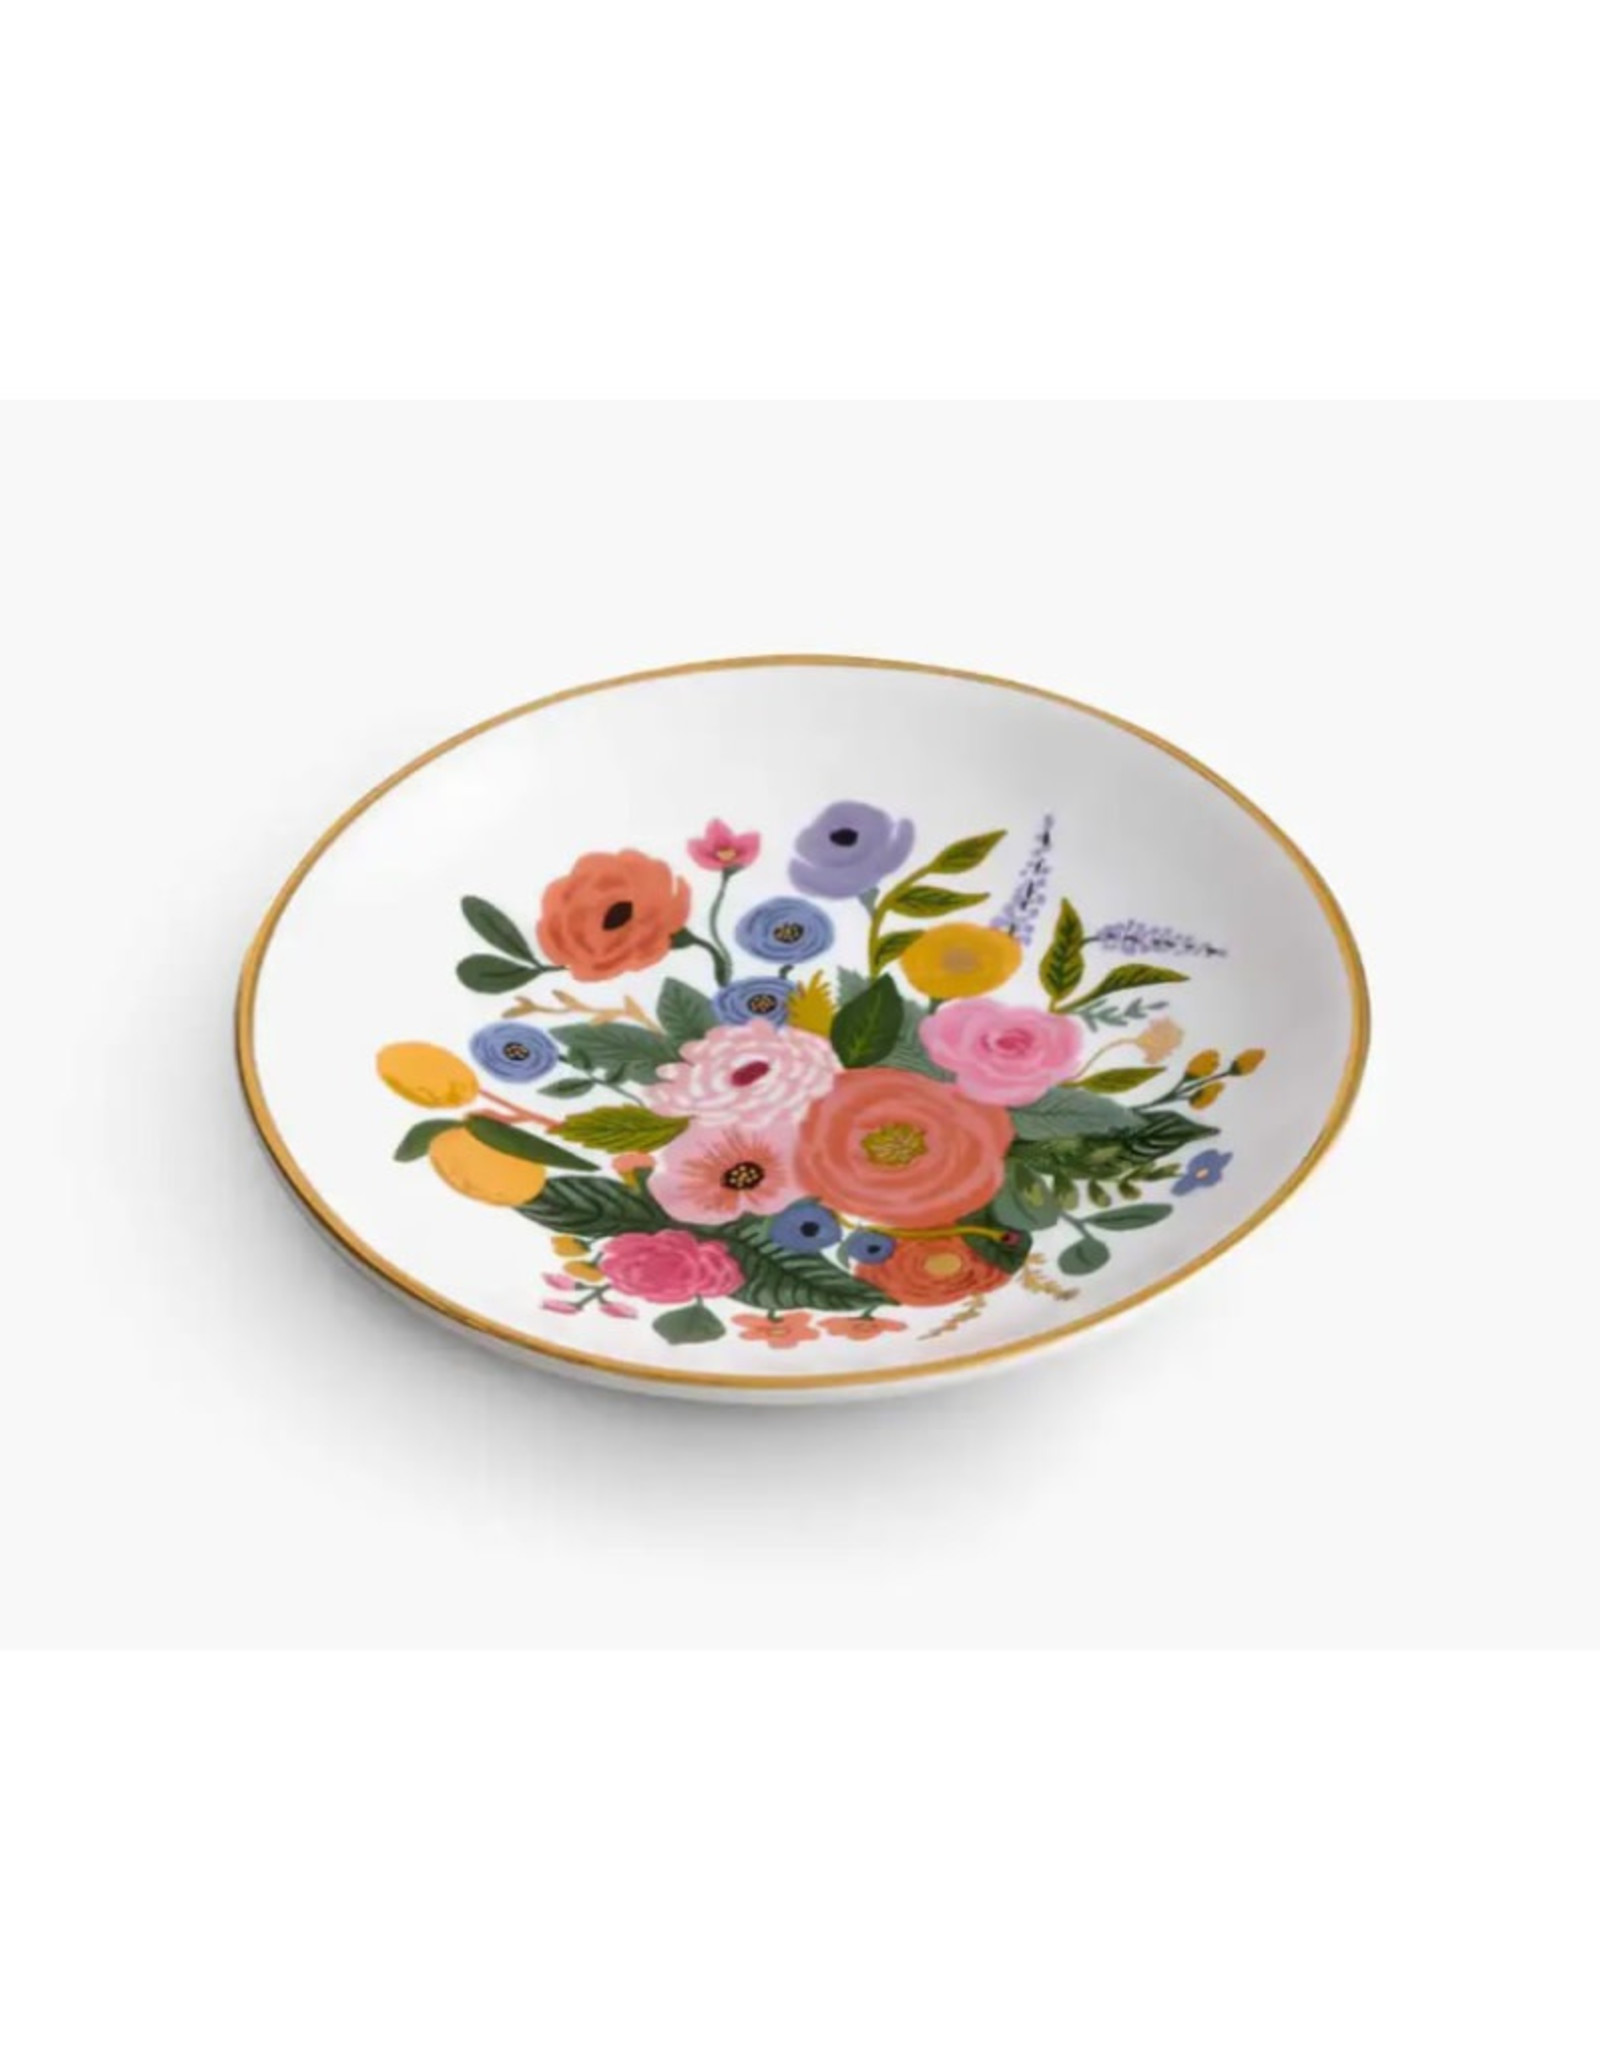 Ring Dish - Garden Party Bouquet